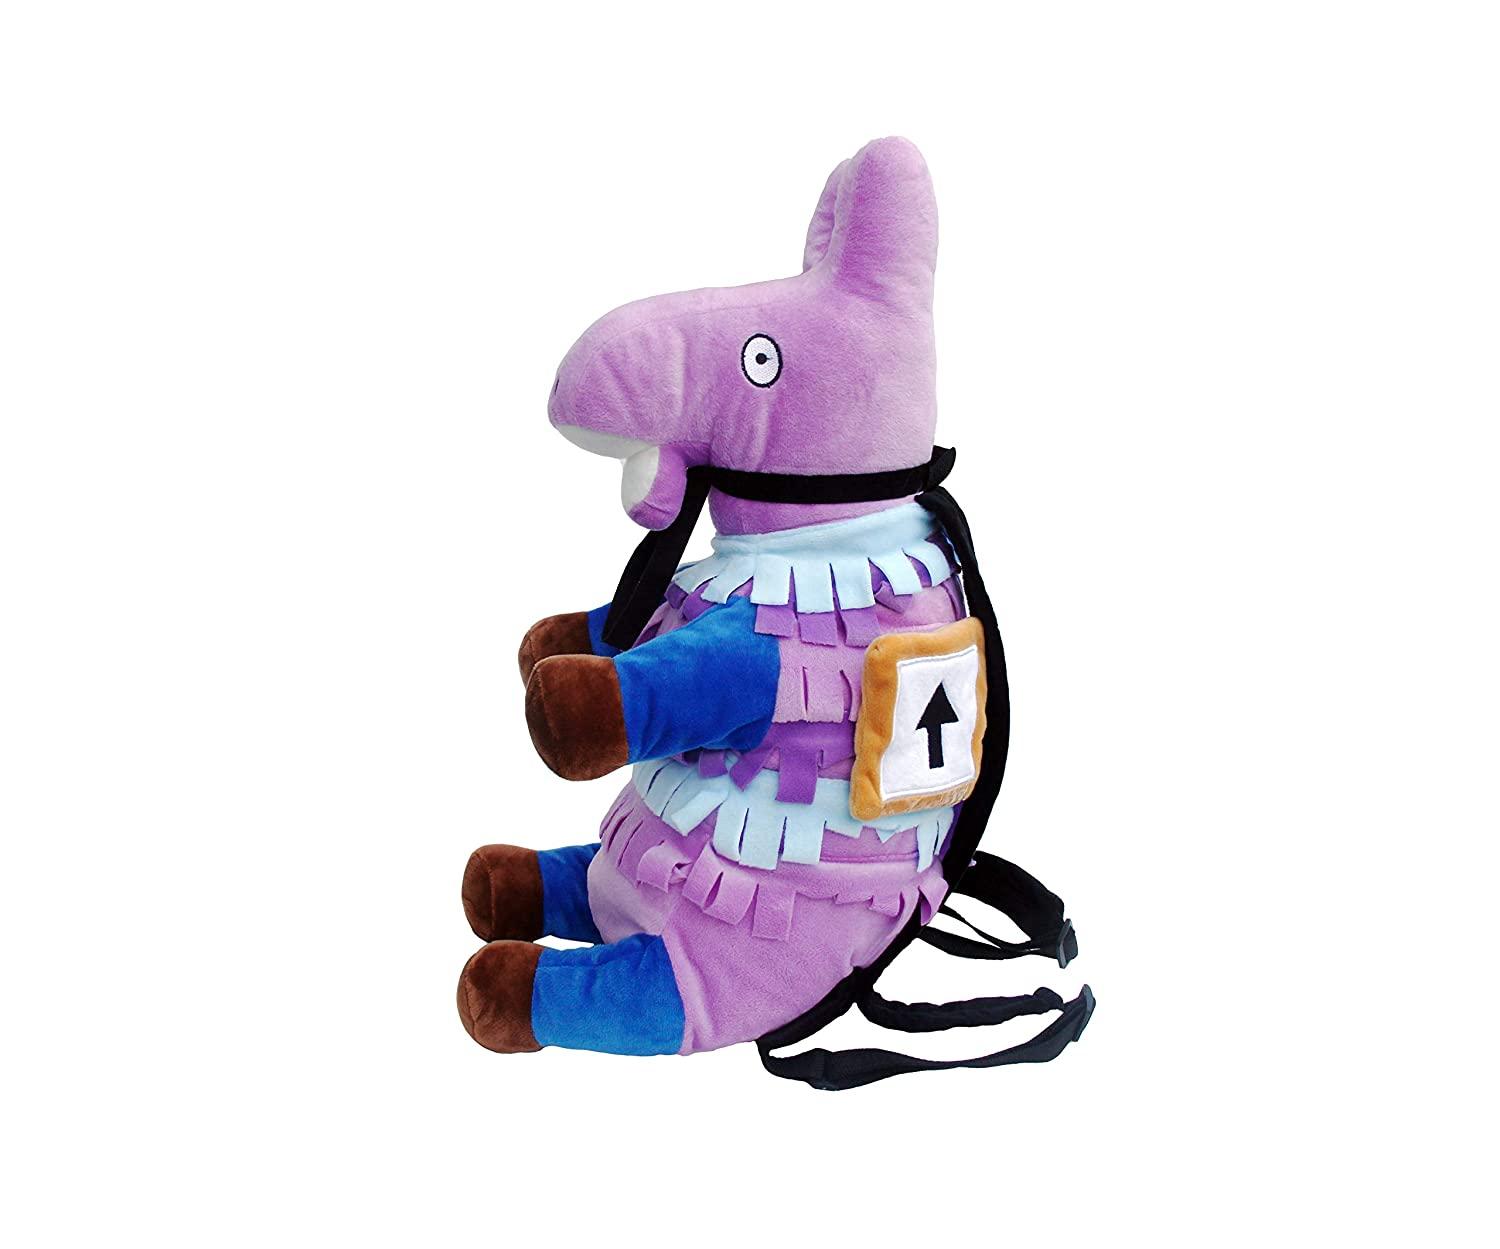 Fortnite Supply Llama Plush Backpack, Rucksack, School Bag for Kids and Adults, Great for School and Travel